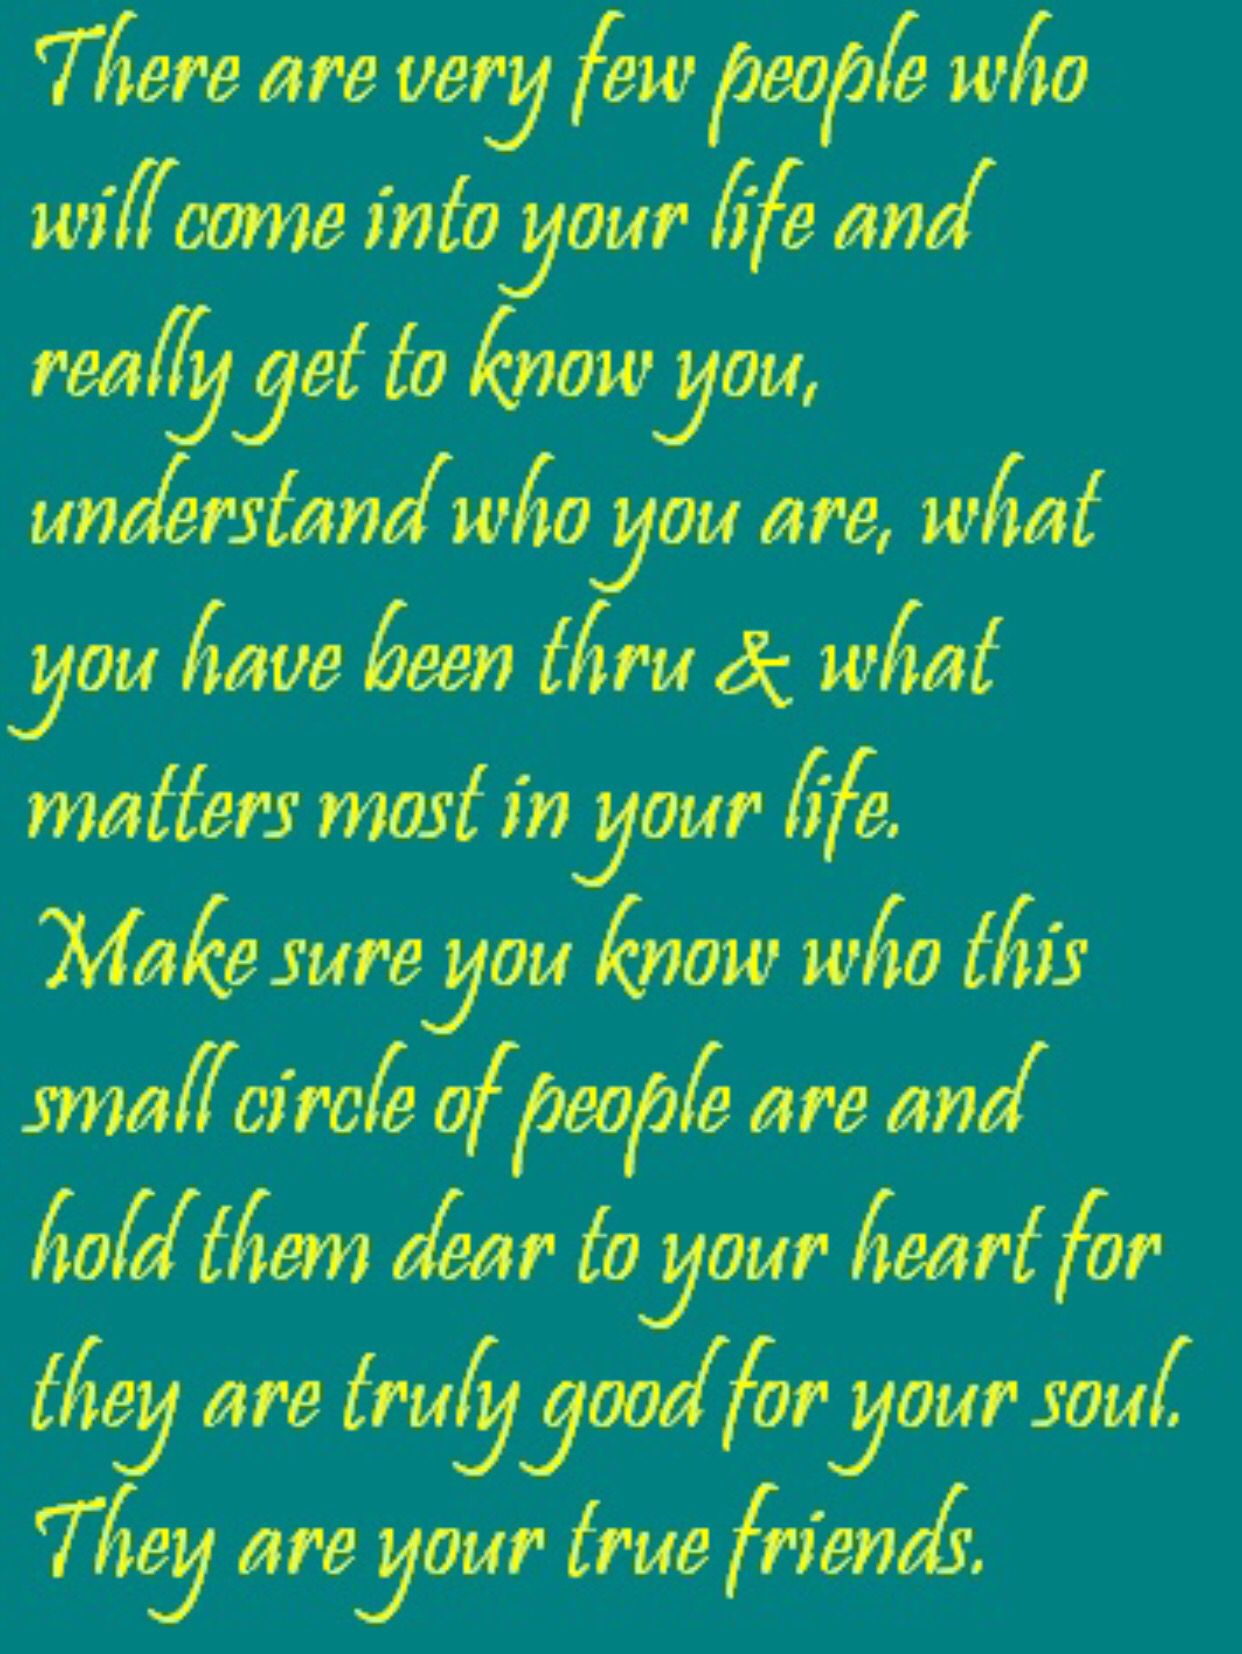 Quotes About Friendship And Family Know Who Are Your True Friends ❤  Indian Wisdom  Pinterest